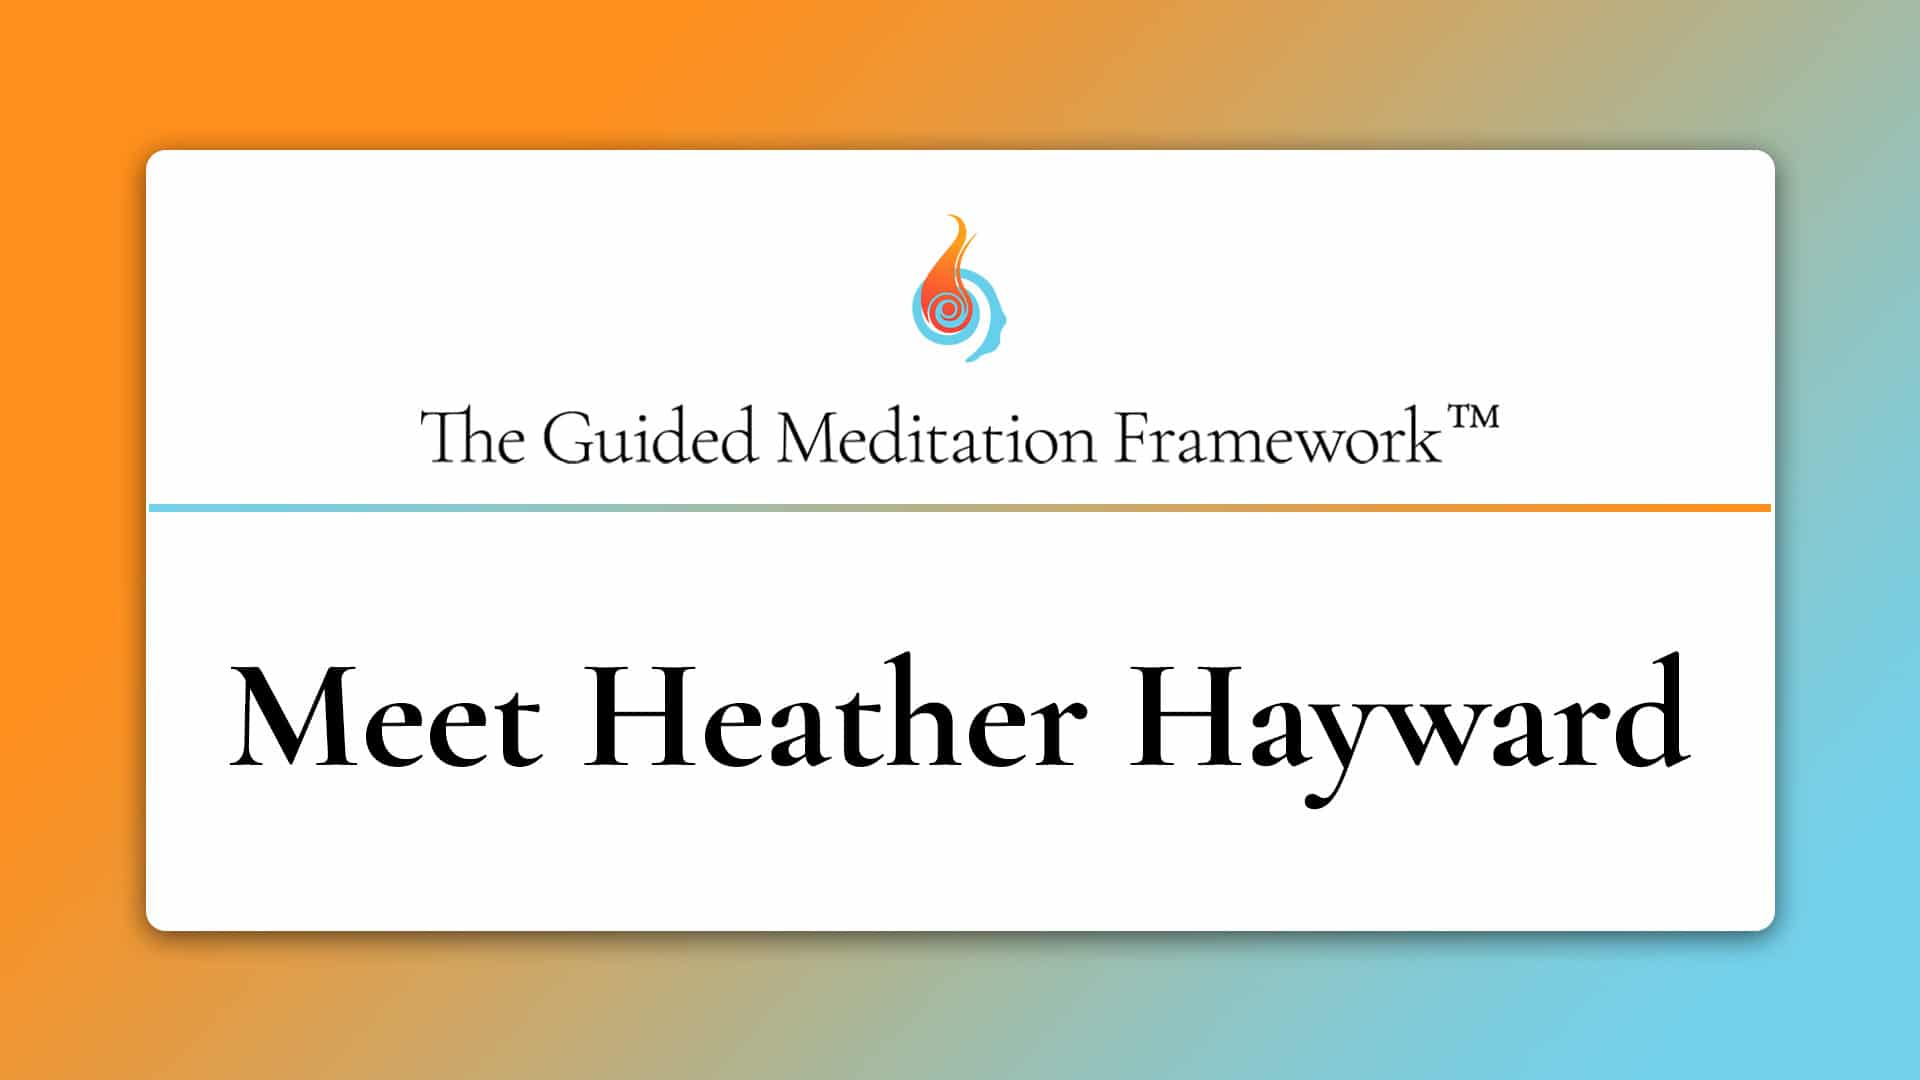 about The Guided Meditation Framework